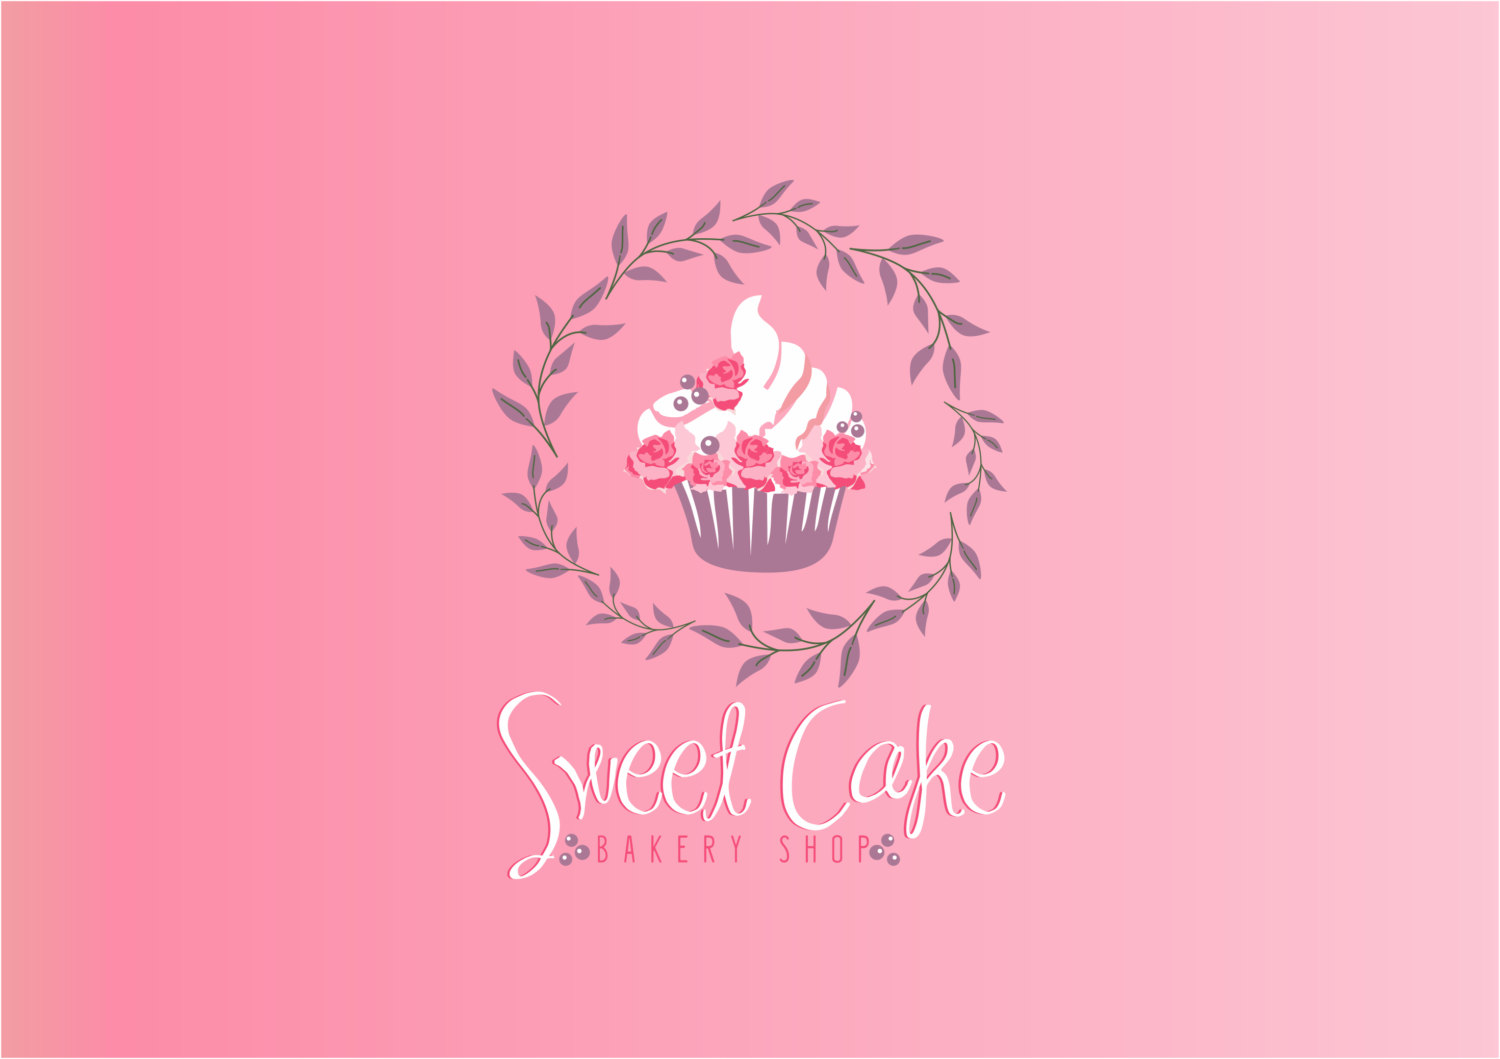 17 Cake Logo PSD Images - Wedding Cake Business Logos ...